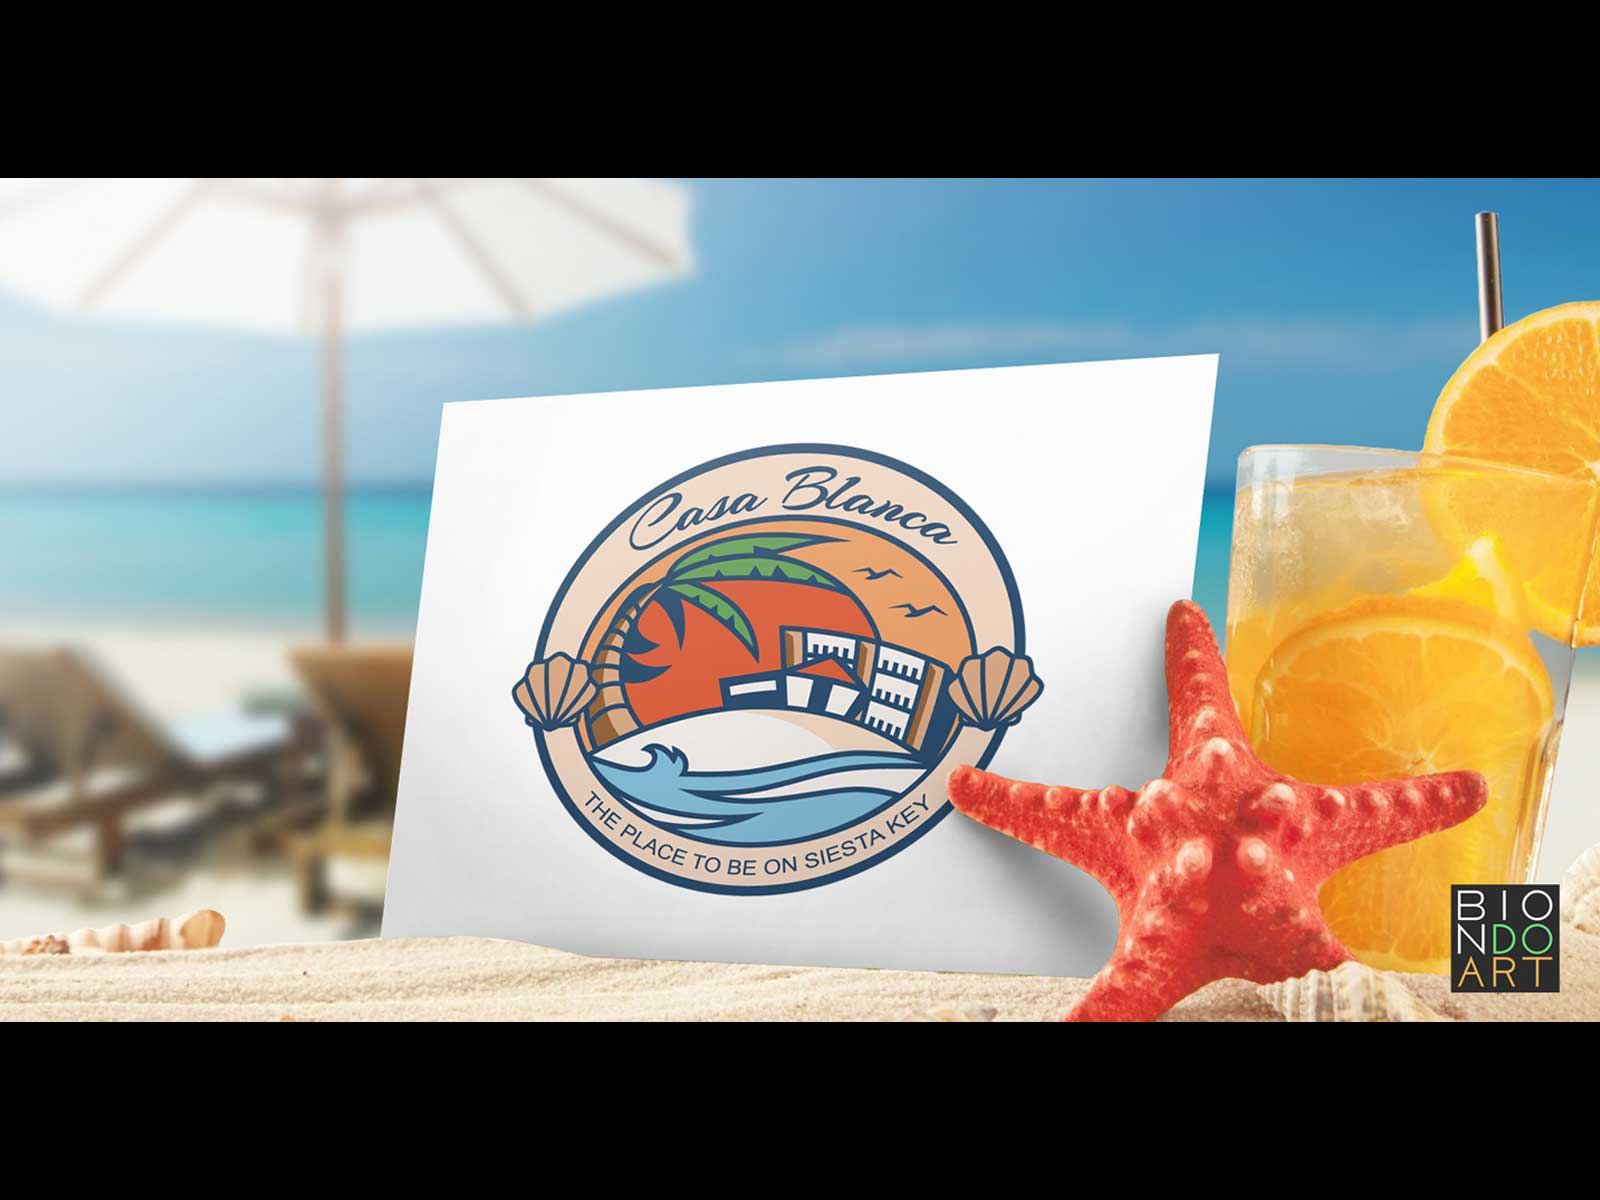 Casa Blanca: Siesta Key Resorts Logo